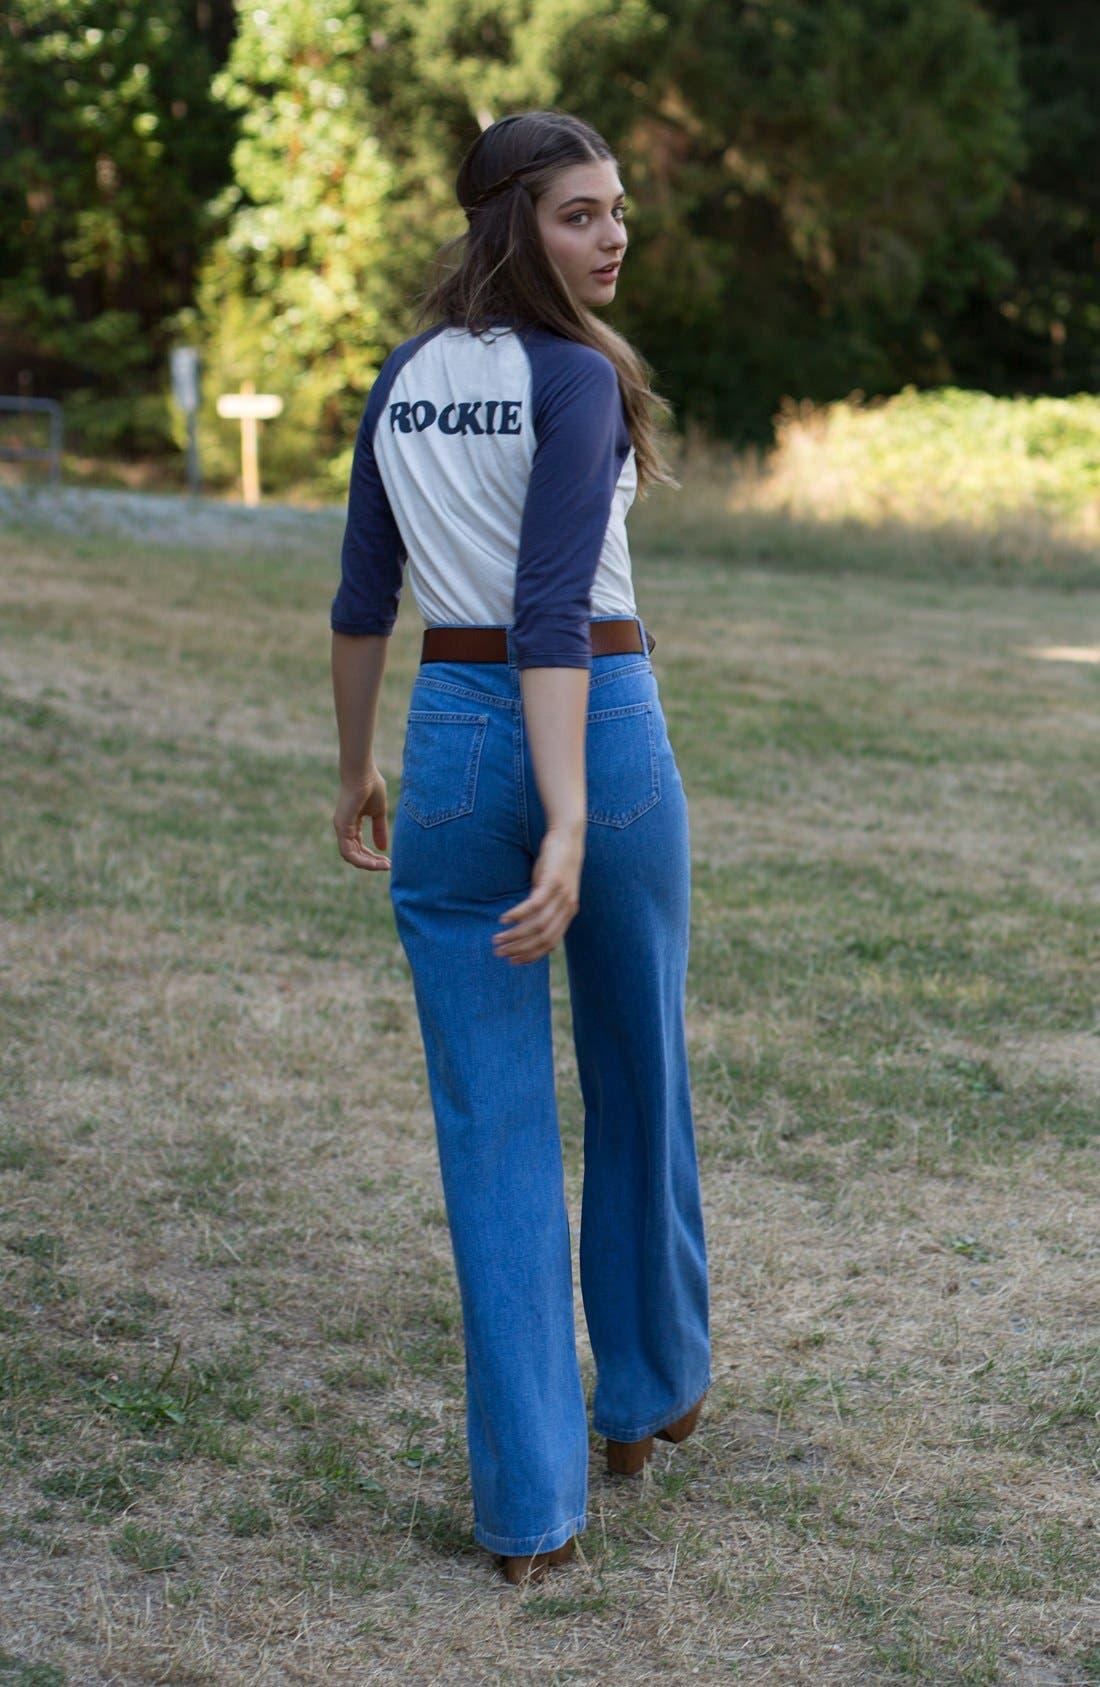 Alternate Image 4  - CAMP Collection 'Rookie' Baseball Tee (Women)